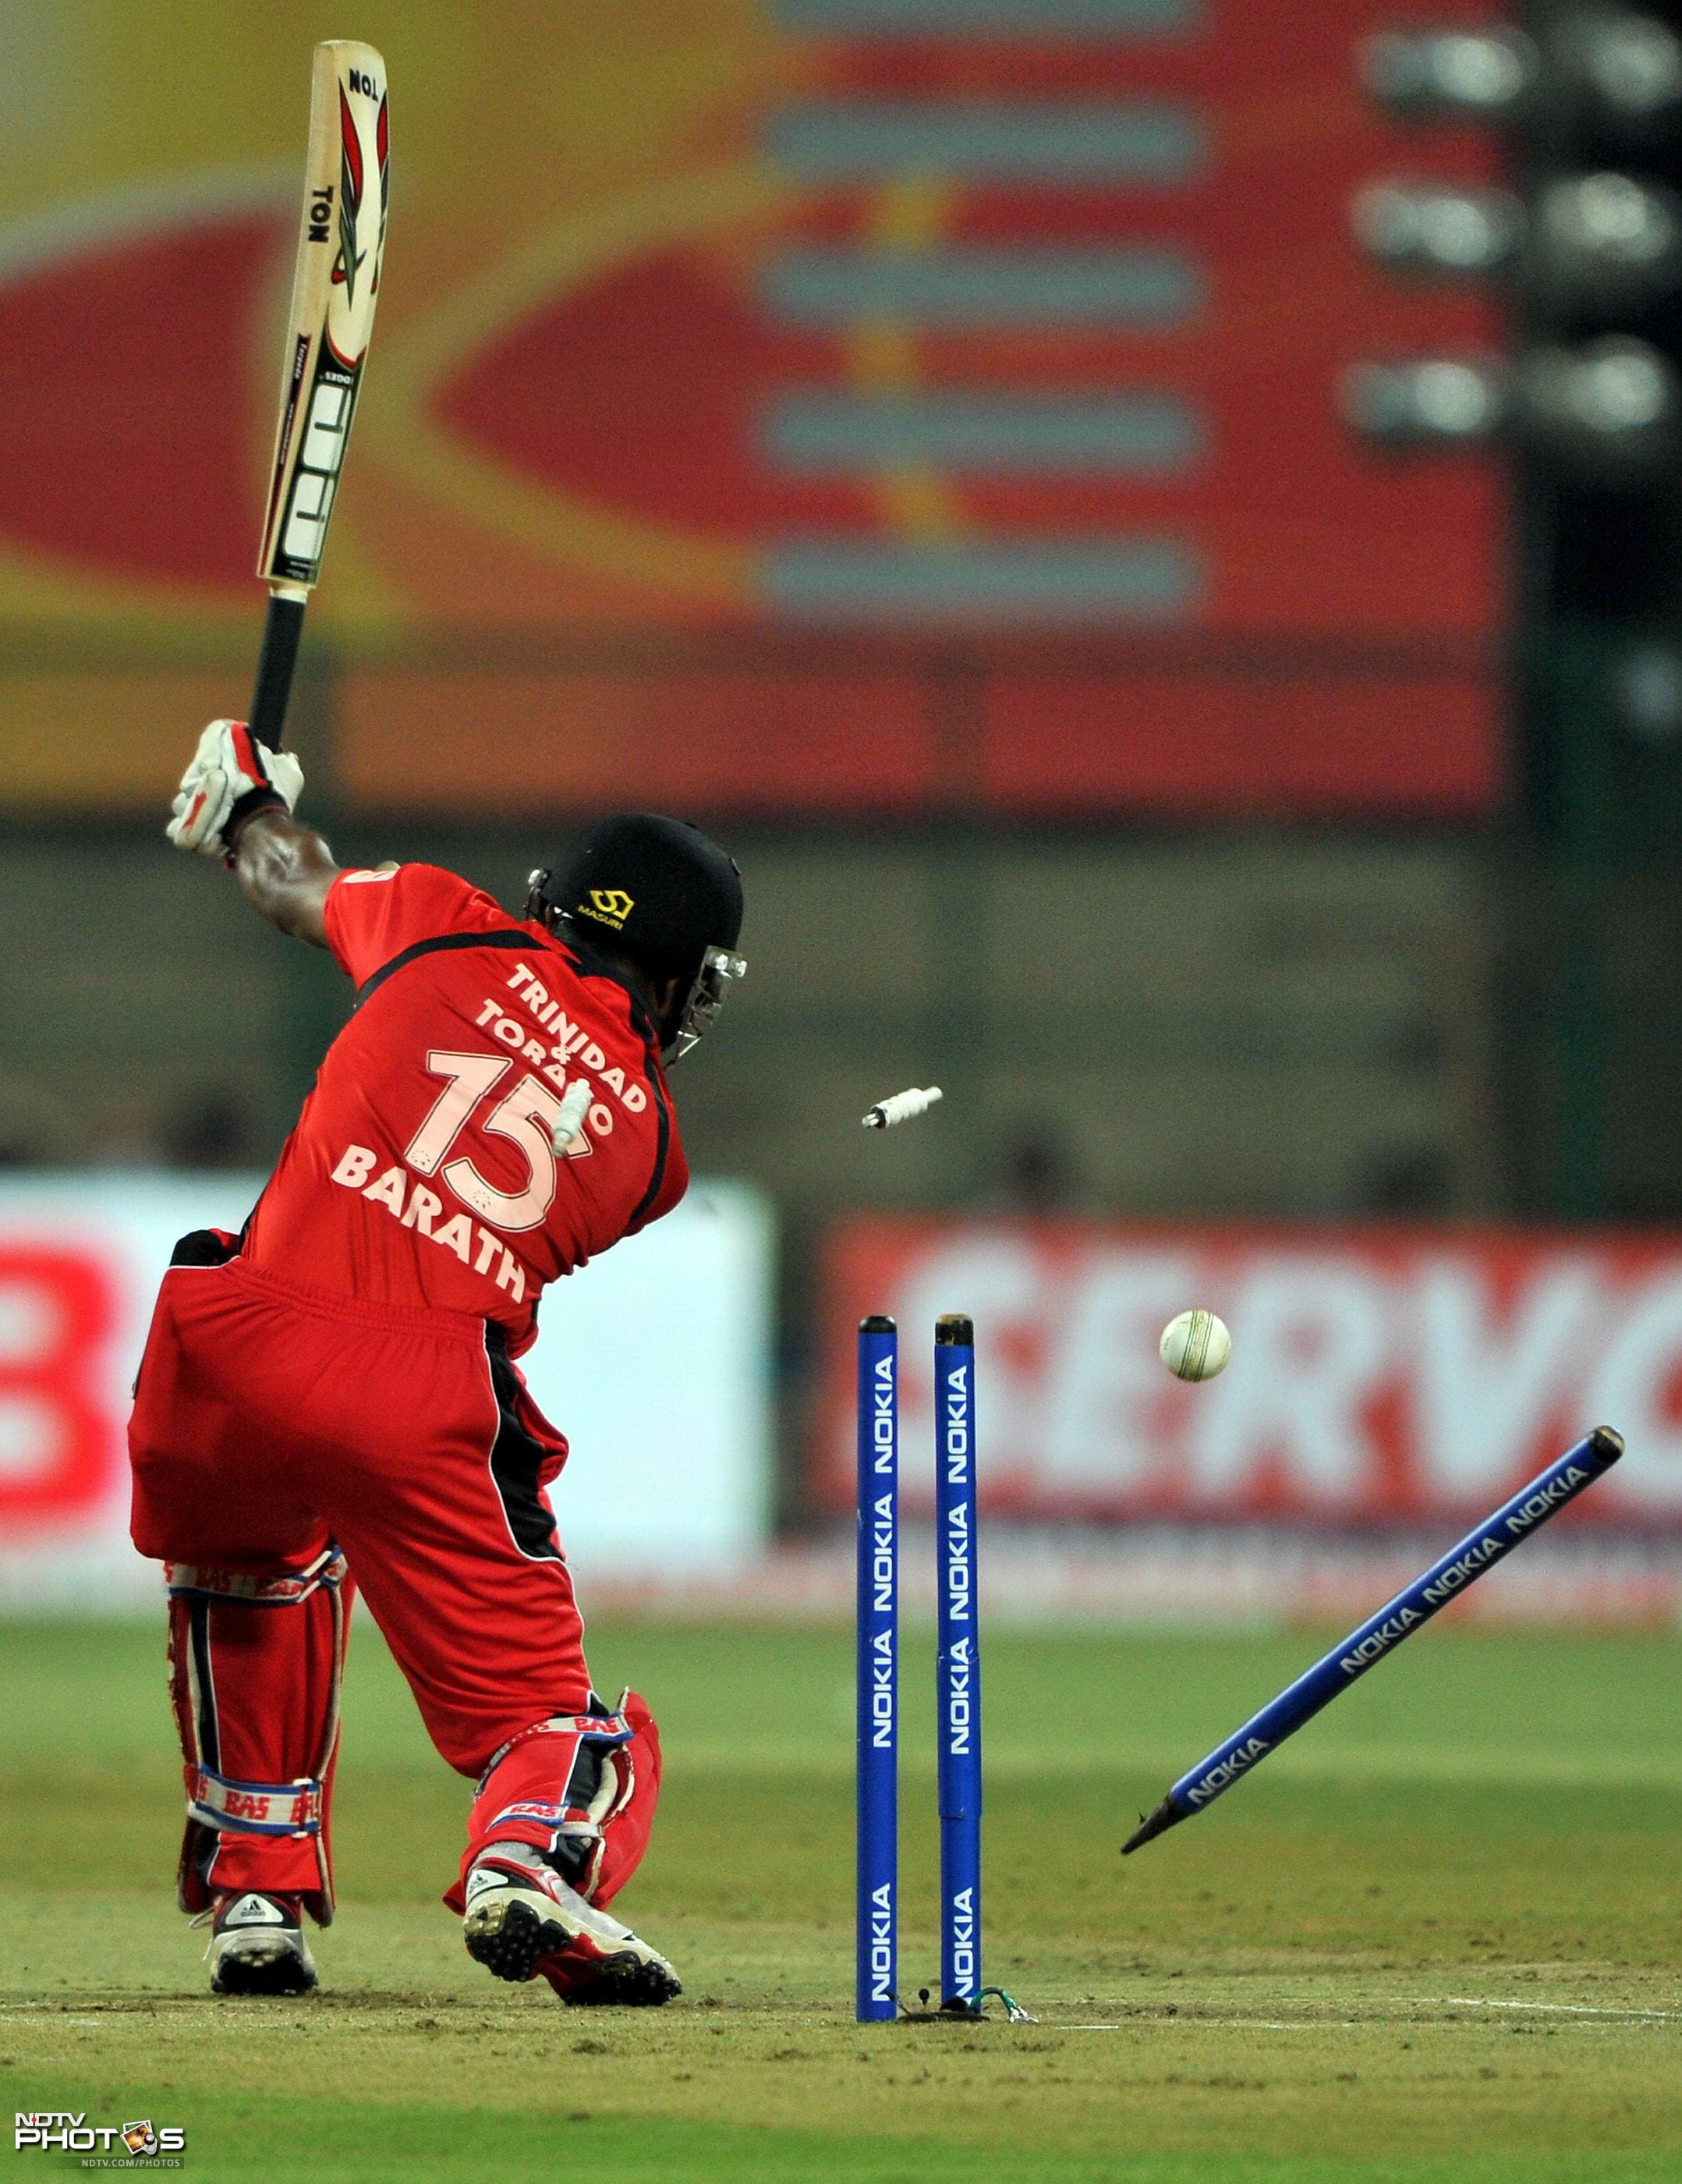 Adrian Barath is dismissed by Lasith Malinga during the Champions League Twenty20 Group A match between Mumbai Indians and Trinidad and Tobago at the M. Chinnaswamy Stadium in Bangalore. (AFP Photo)